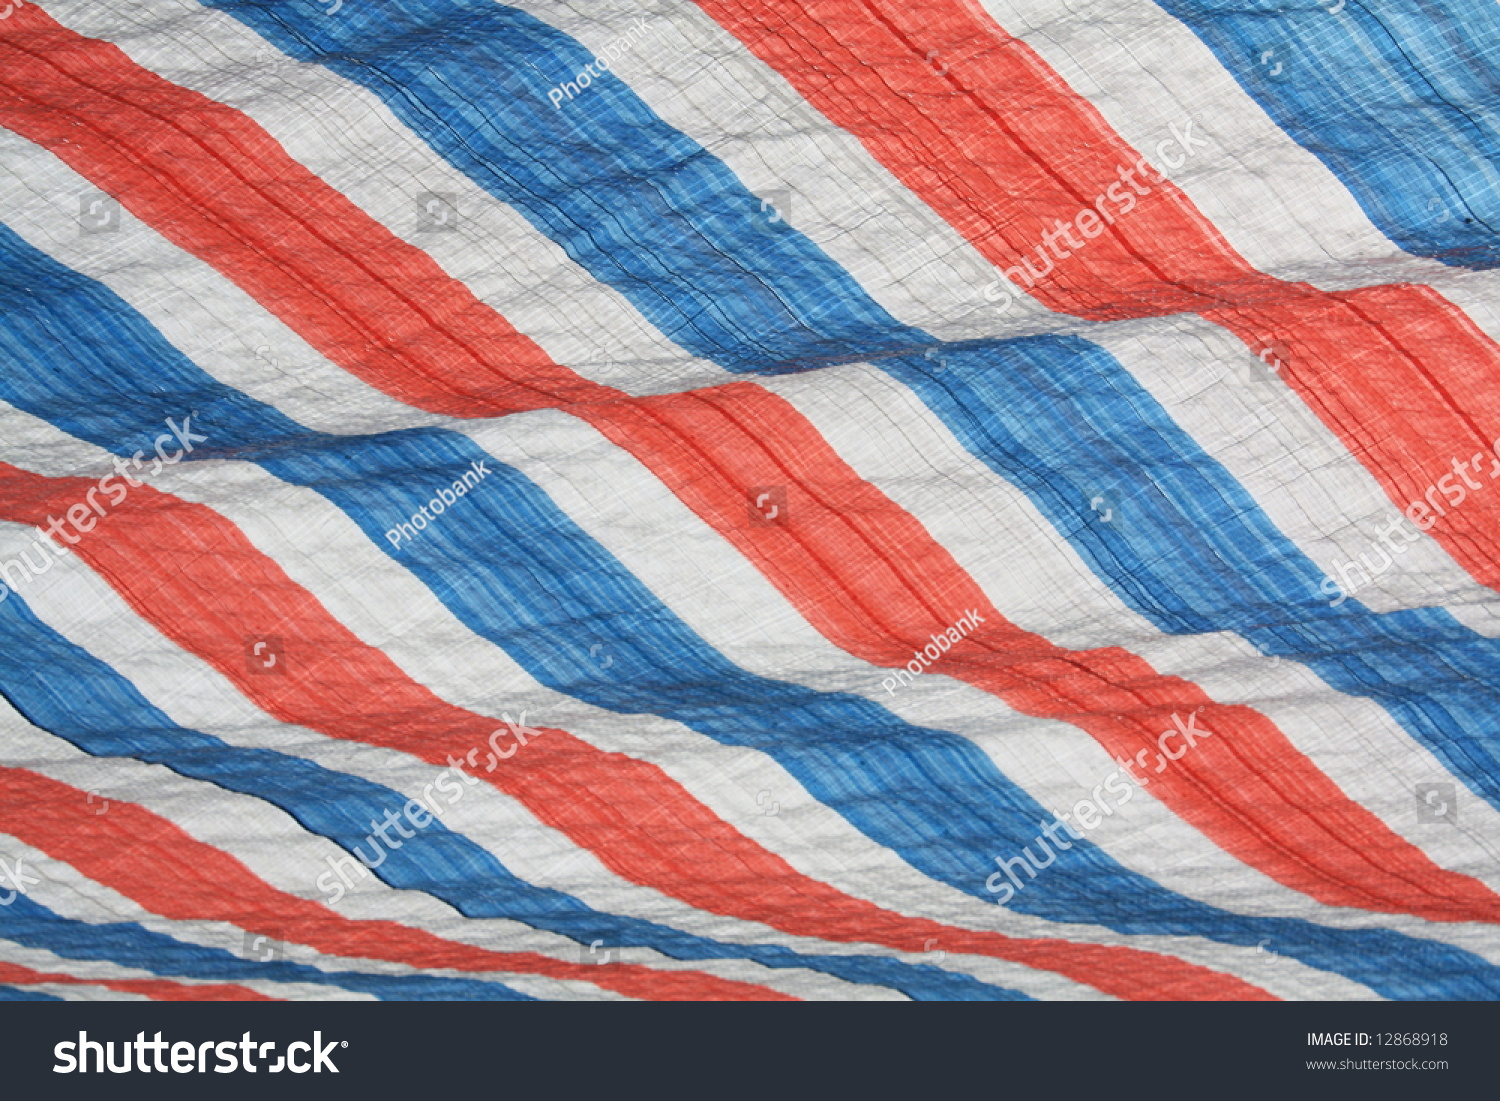 Off white diagonal striped plastic texture picture free photograph - Plastic Cover Sheet Texture